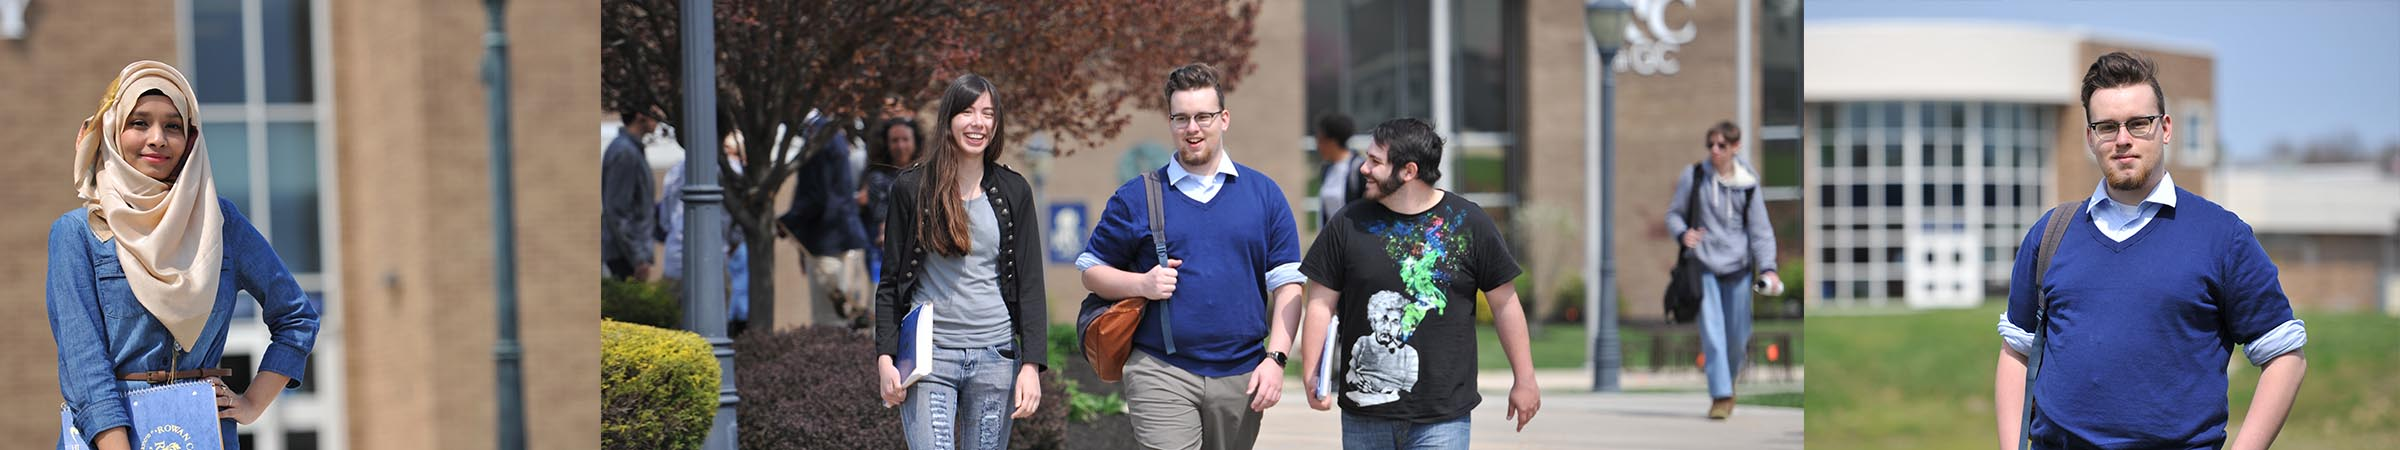 Rowan College students outside on campus